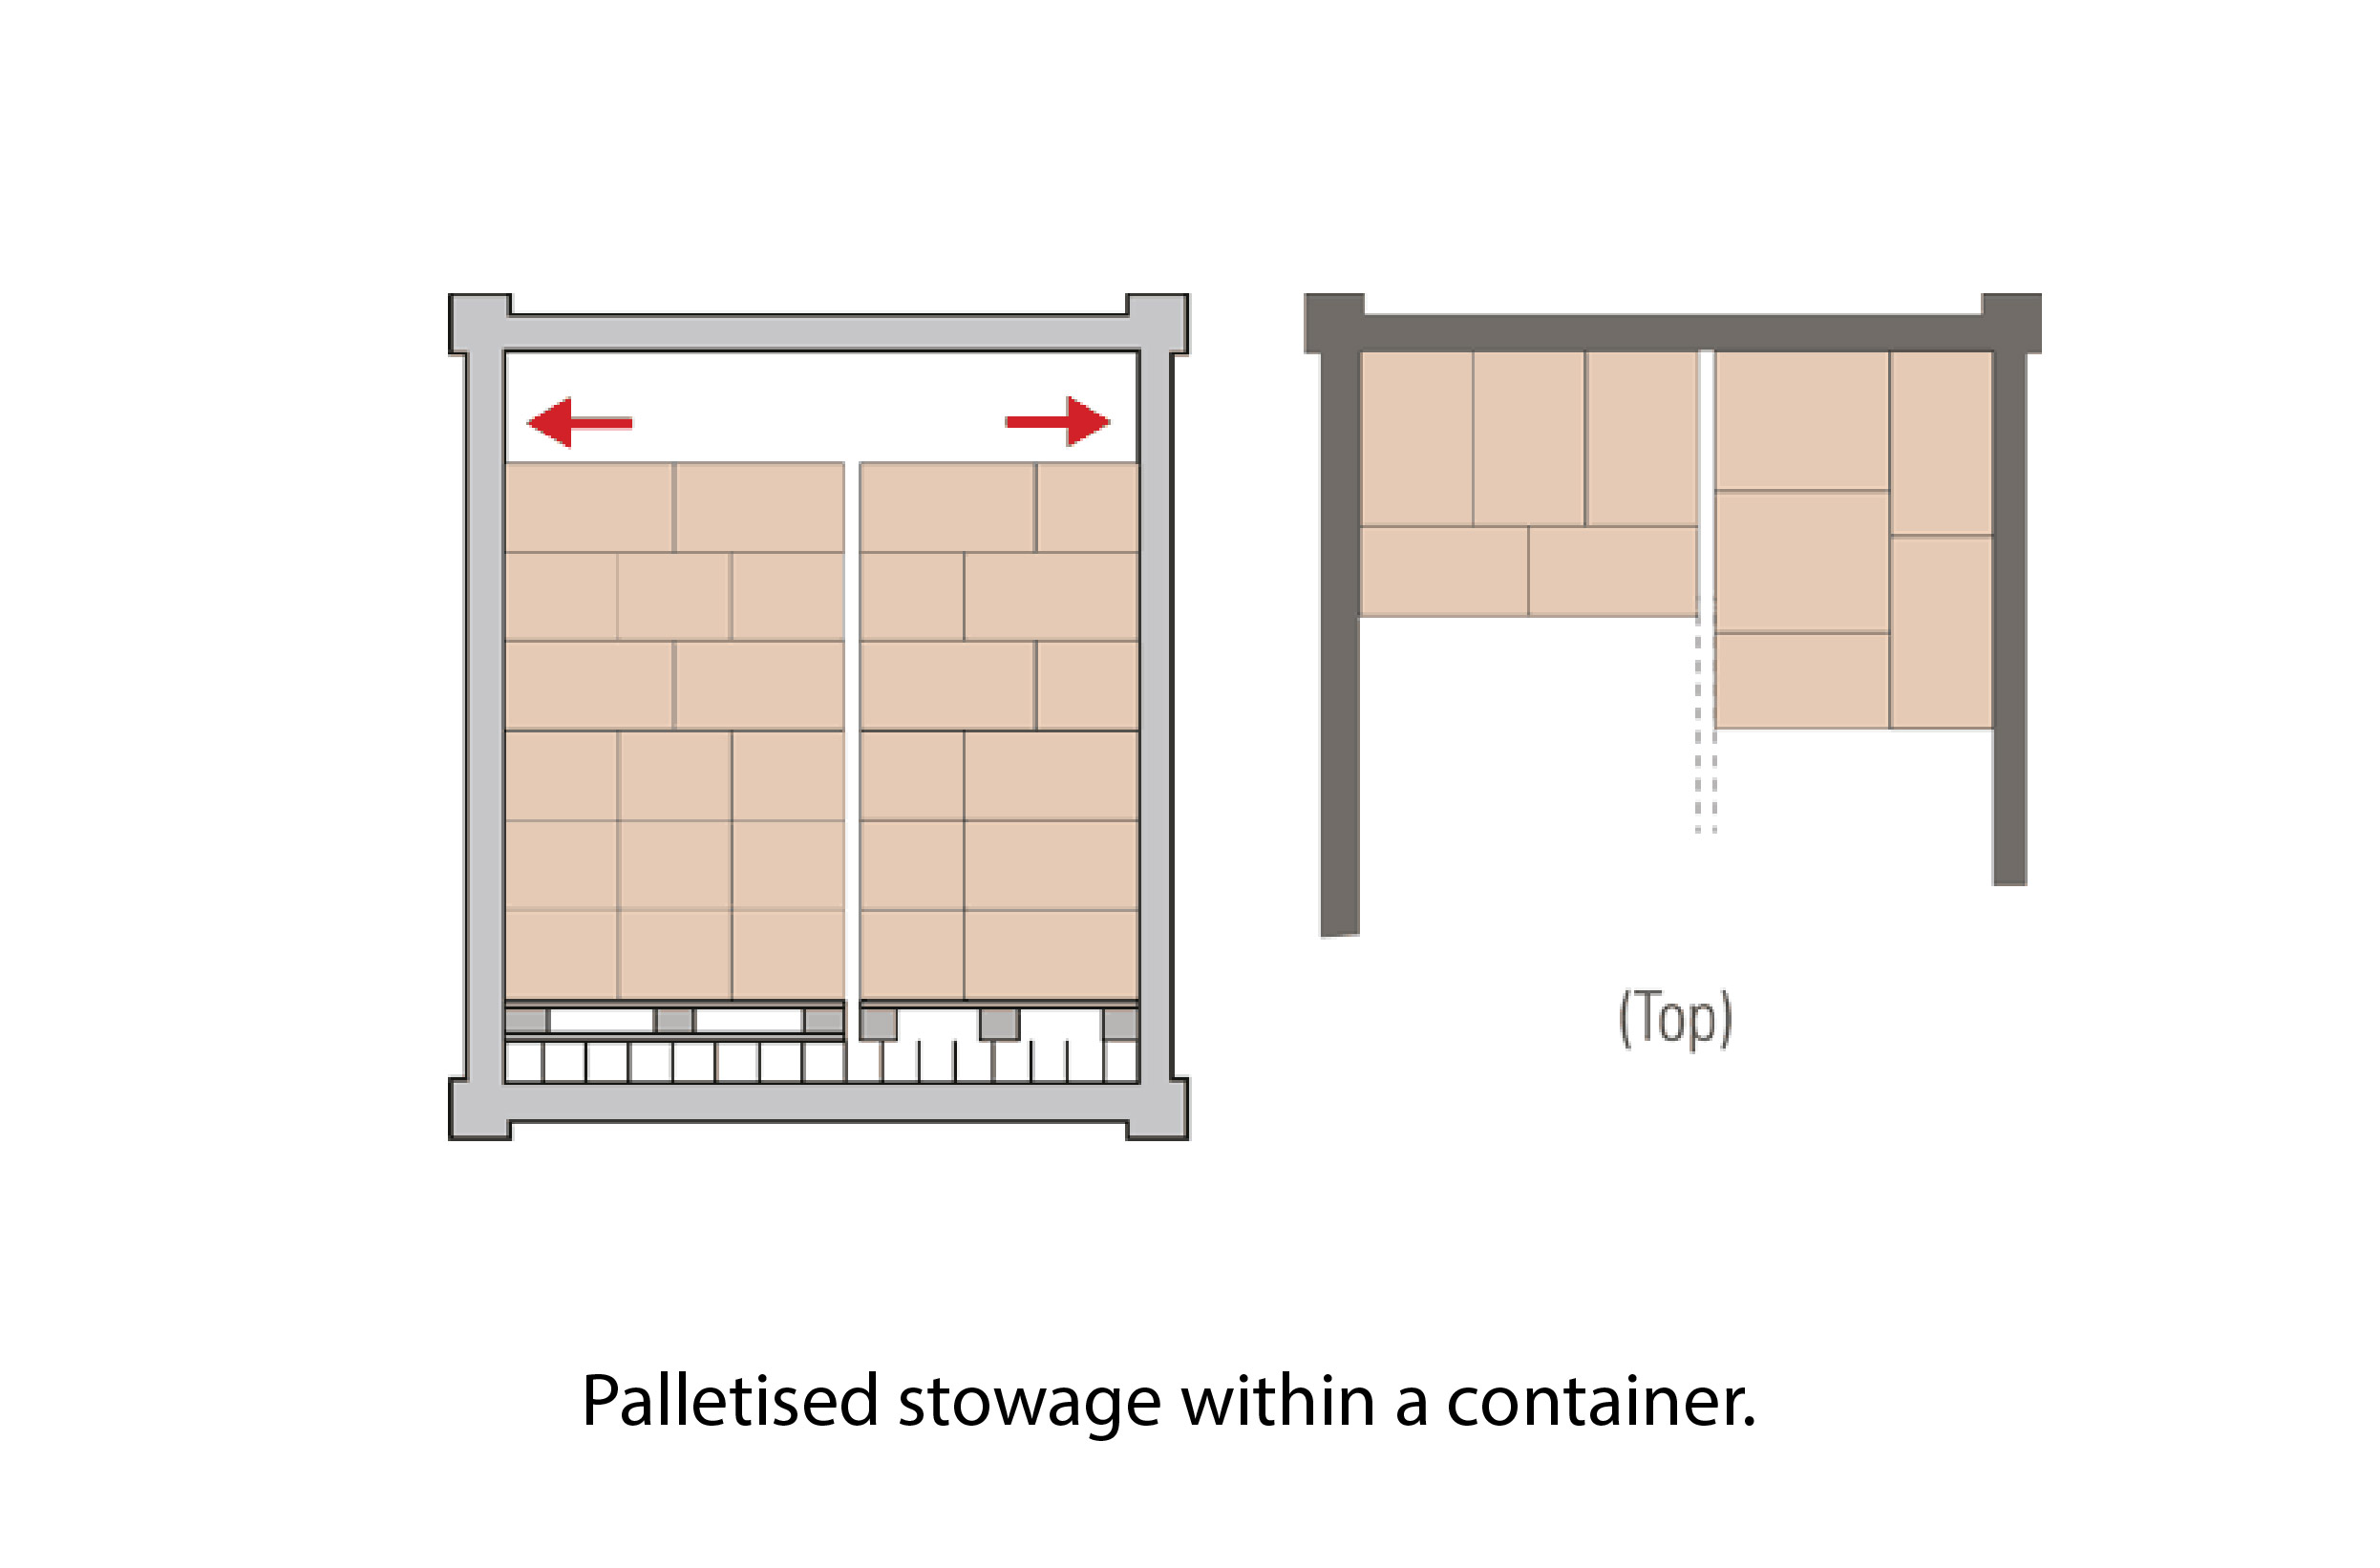 Palletized Stowage